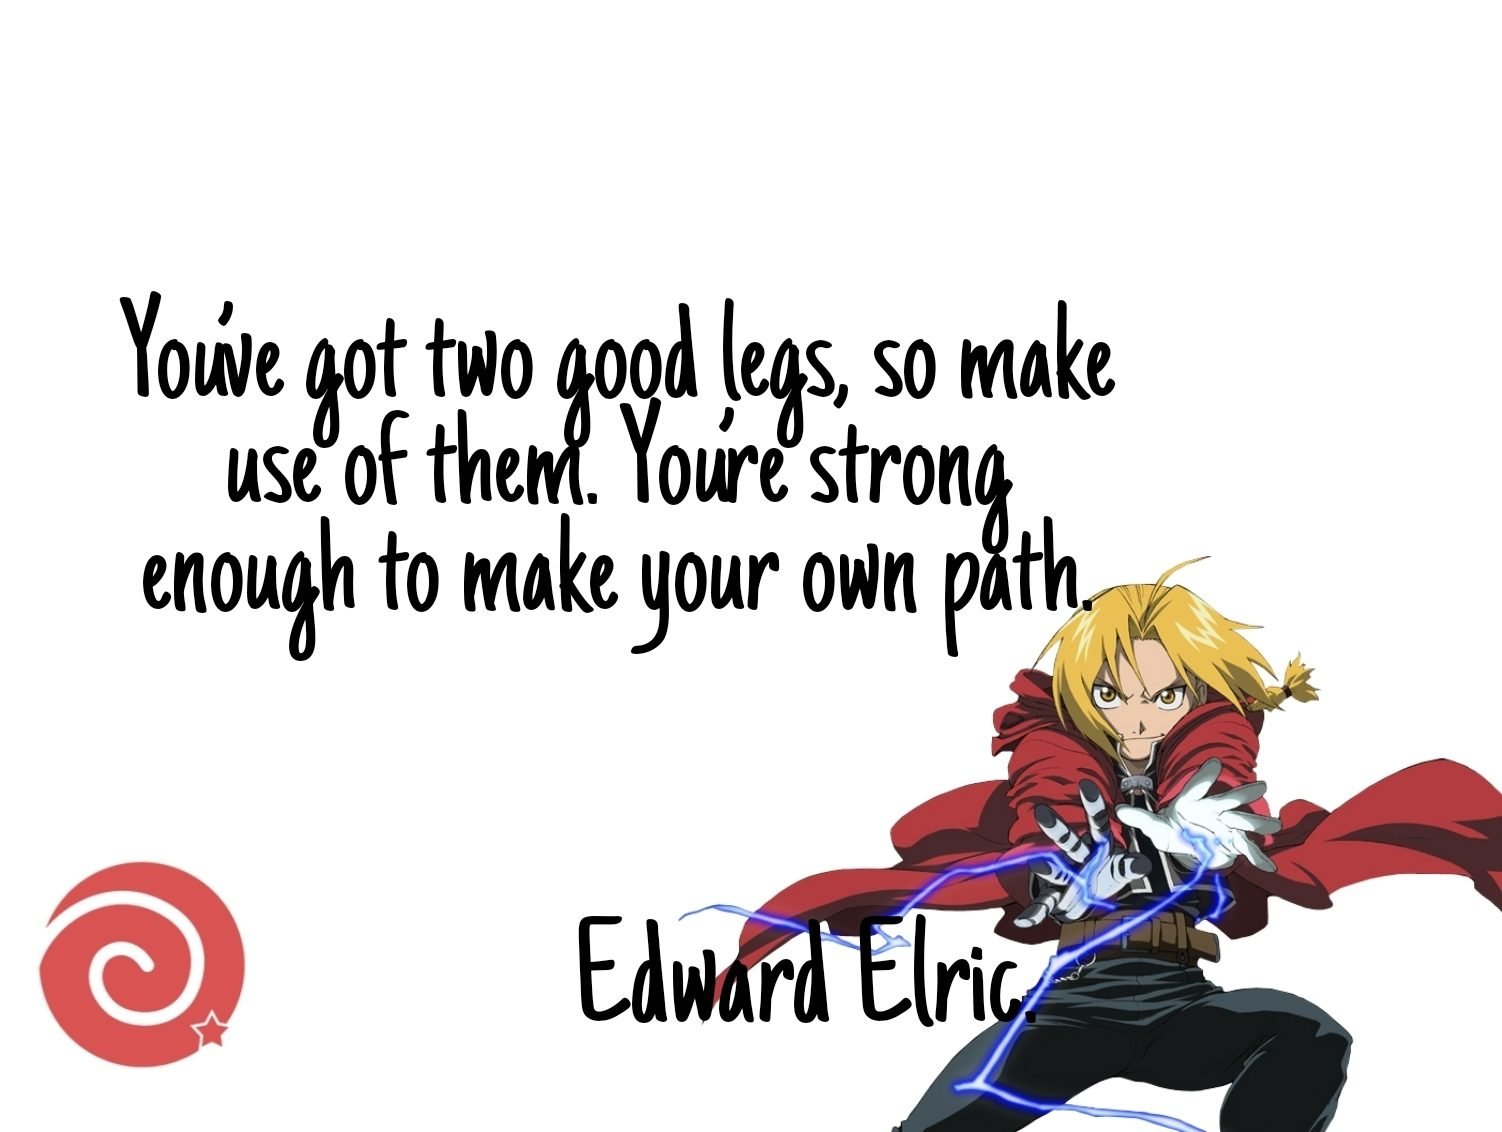 Edward Elric Quotes